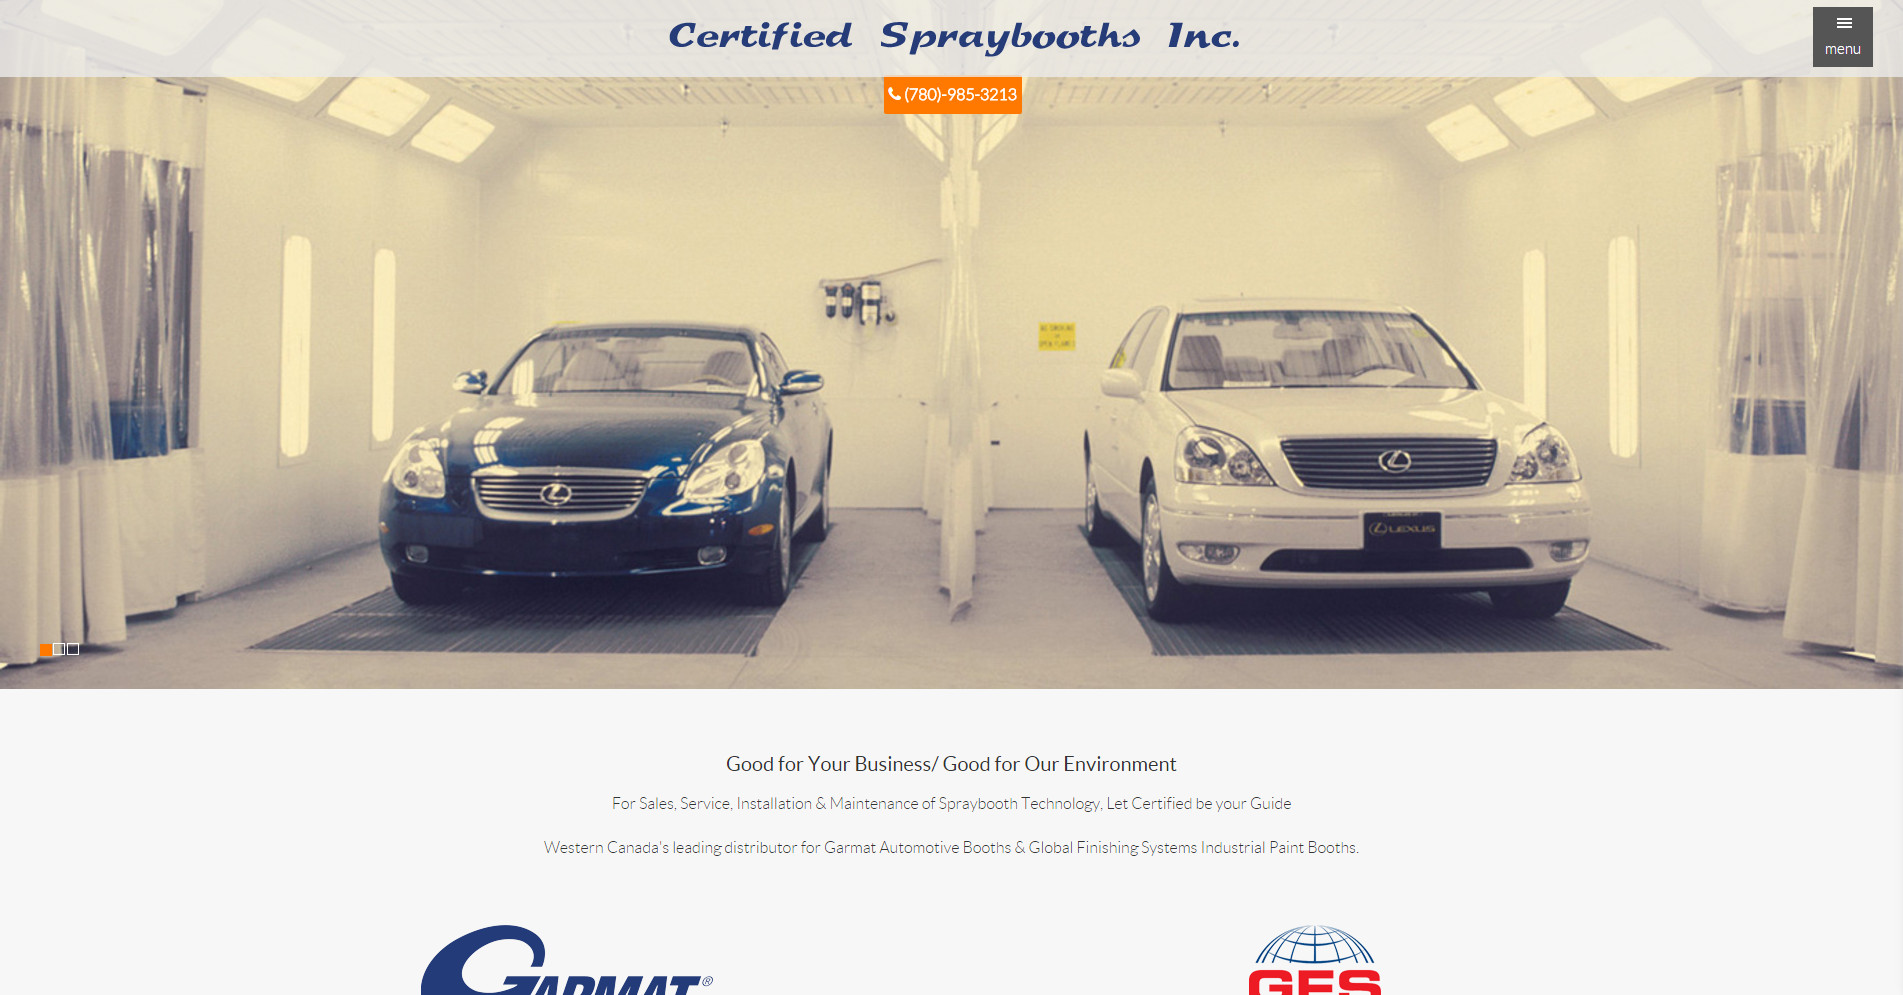 Rooms: Certified Spraybooths Sells Garmat And Global Equipment